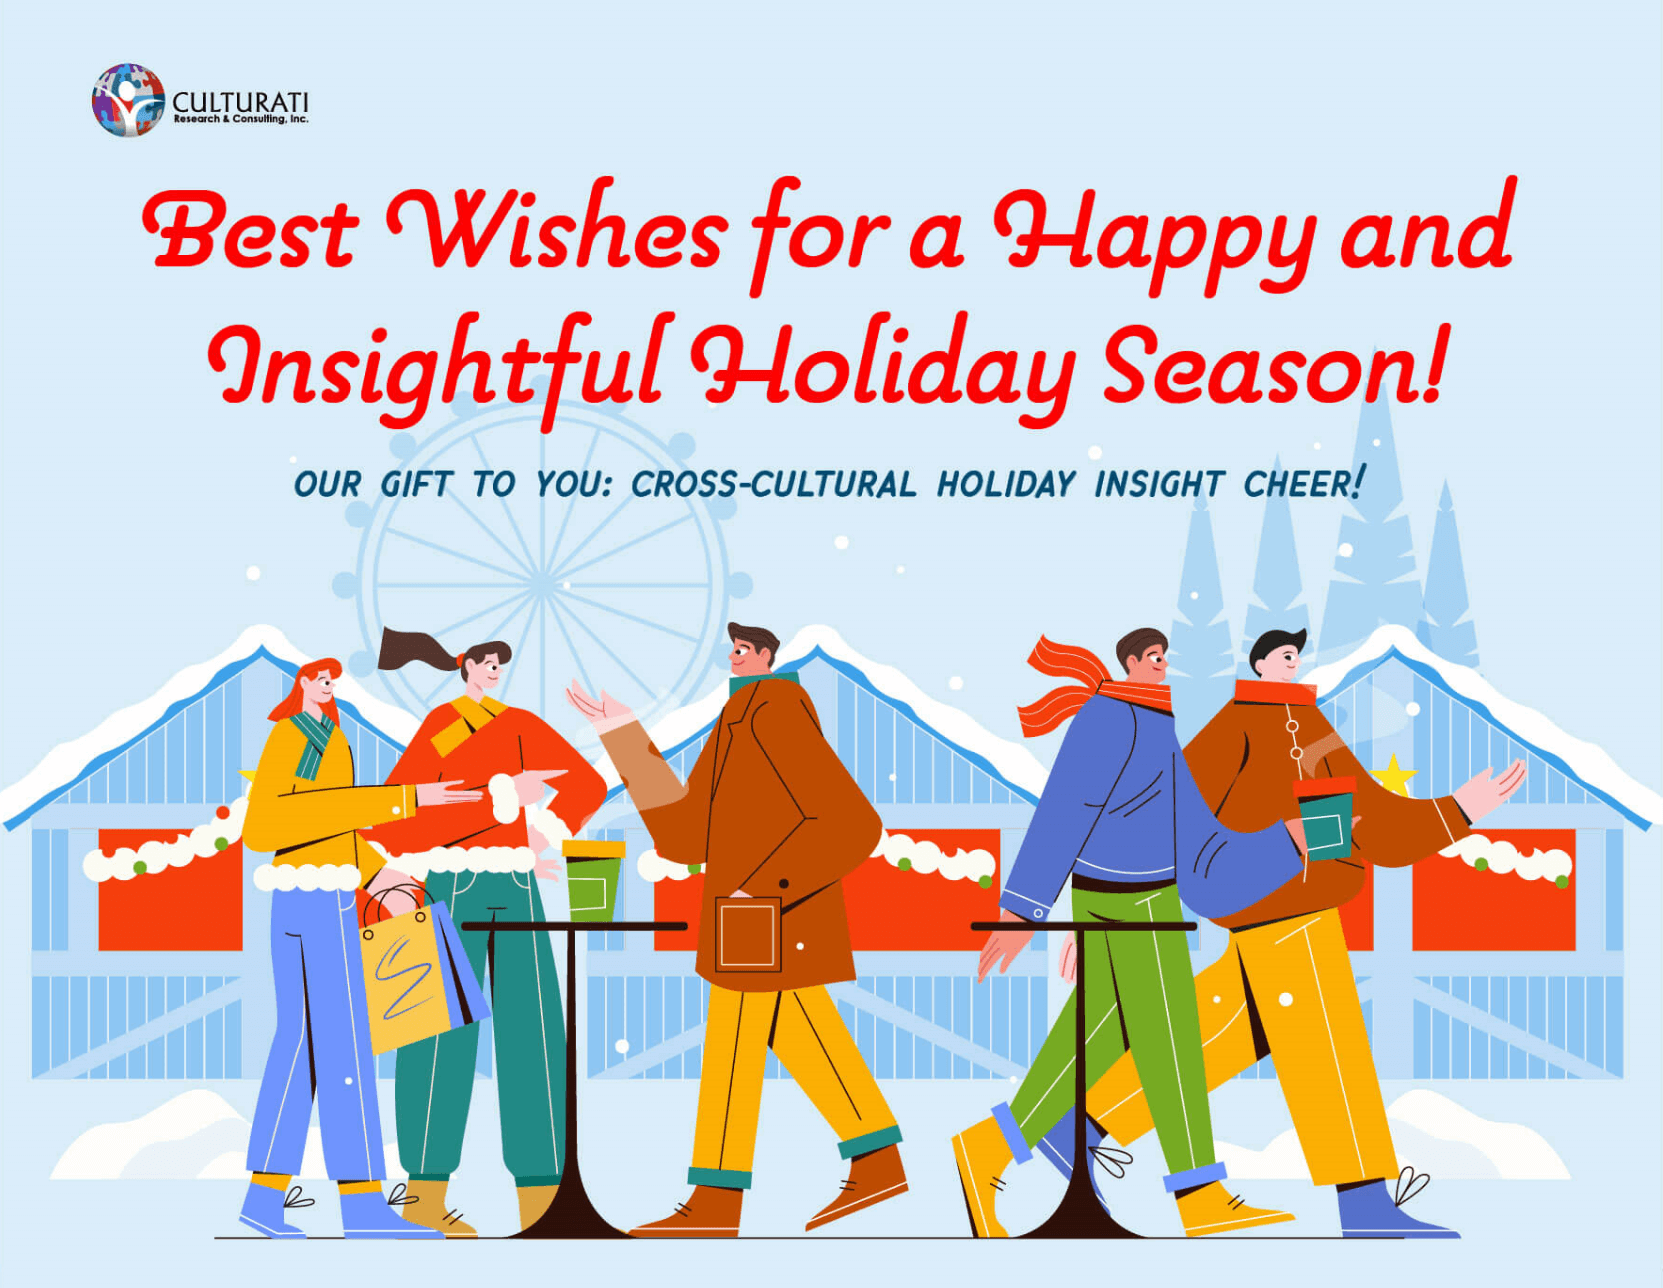 2020 Infographic: Cross-Cultural Holiday Insight Cheer